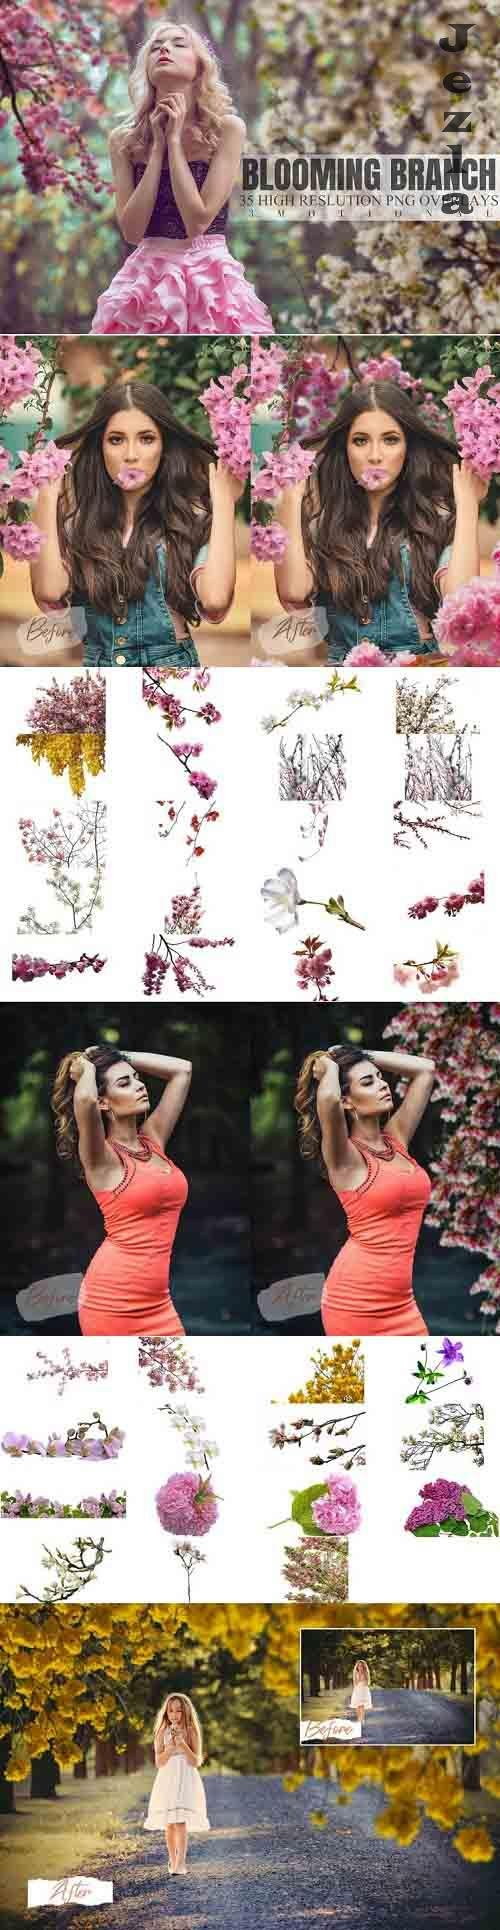 35 Blooming Branch Overlays  - 763758